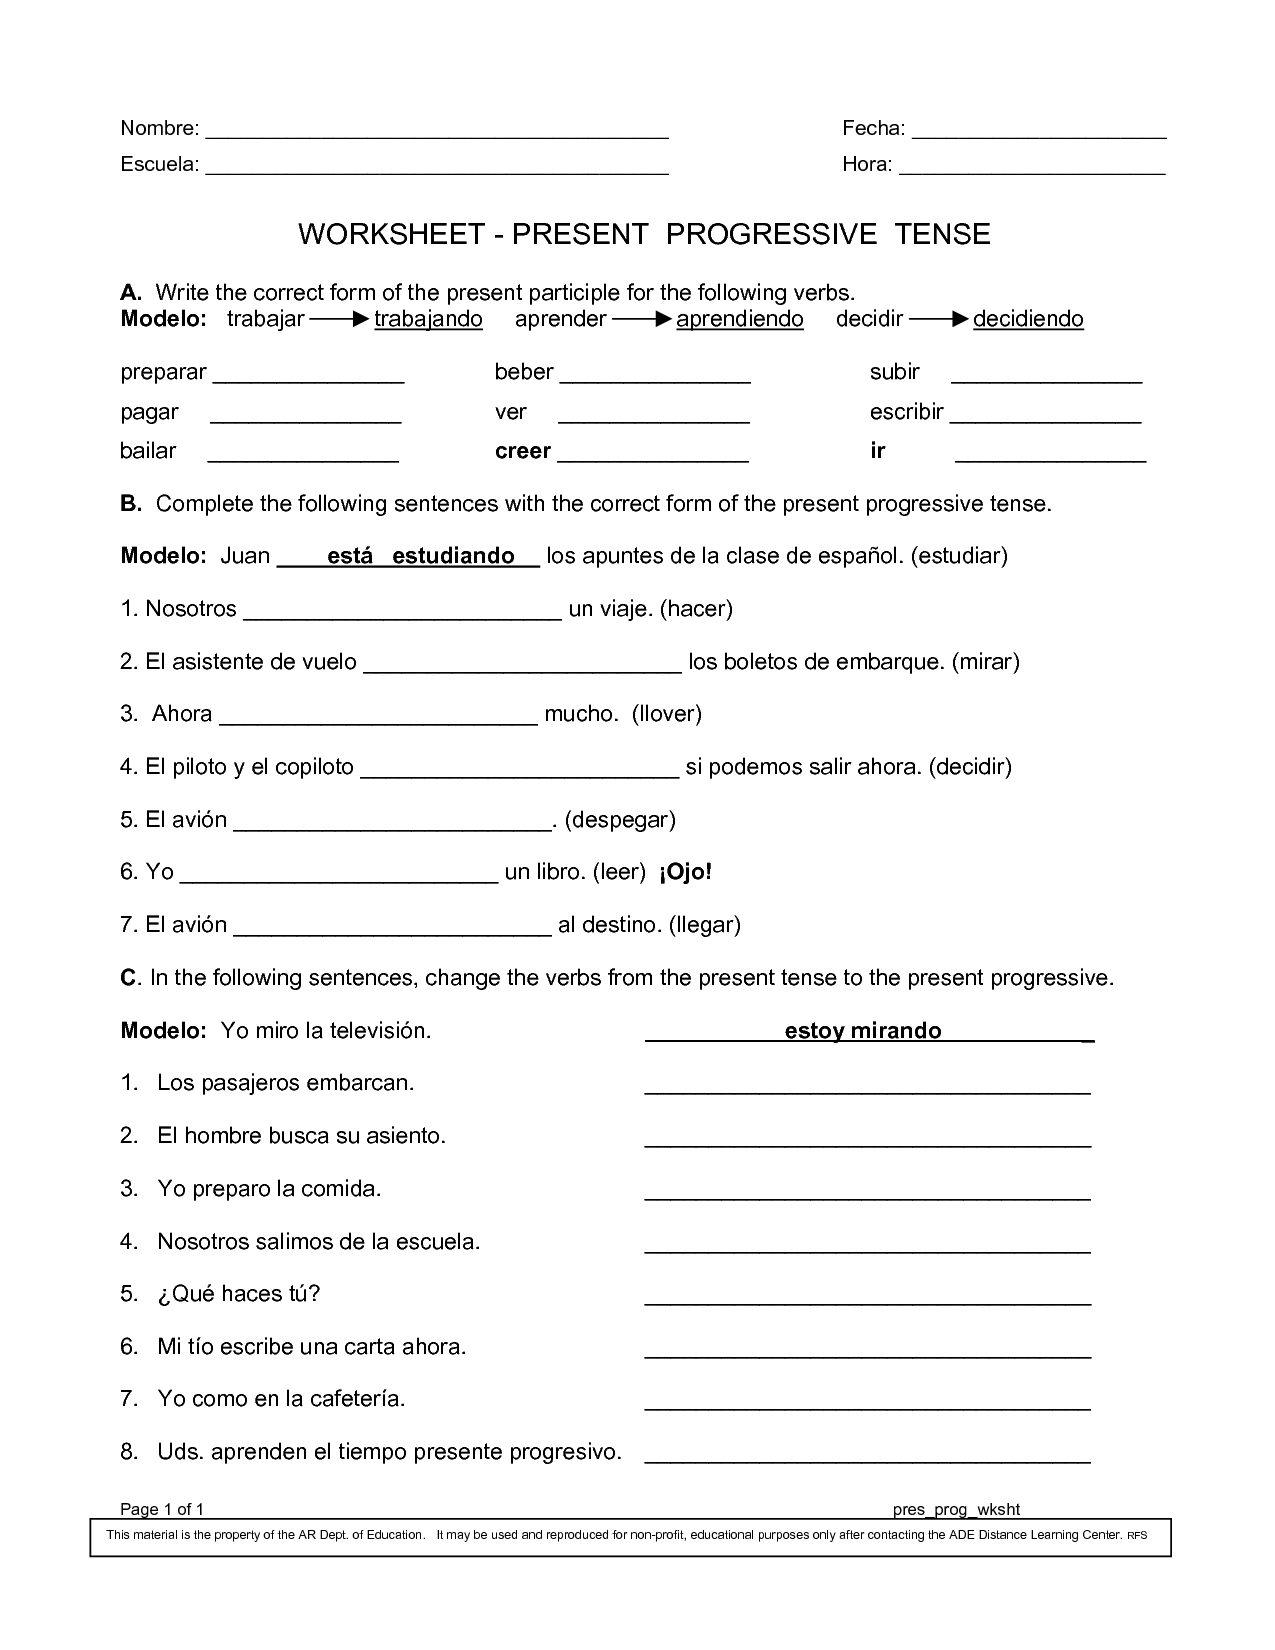 Worksheets High School Spanish Worksheets best 25 spanish worksheets ideas on pinterest learn free learning and language